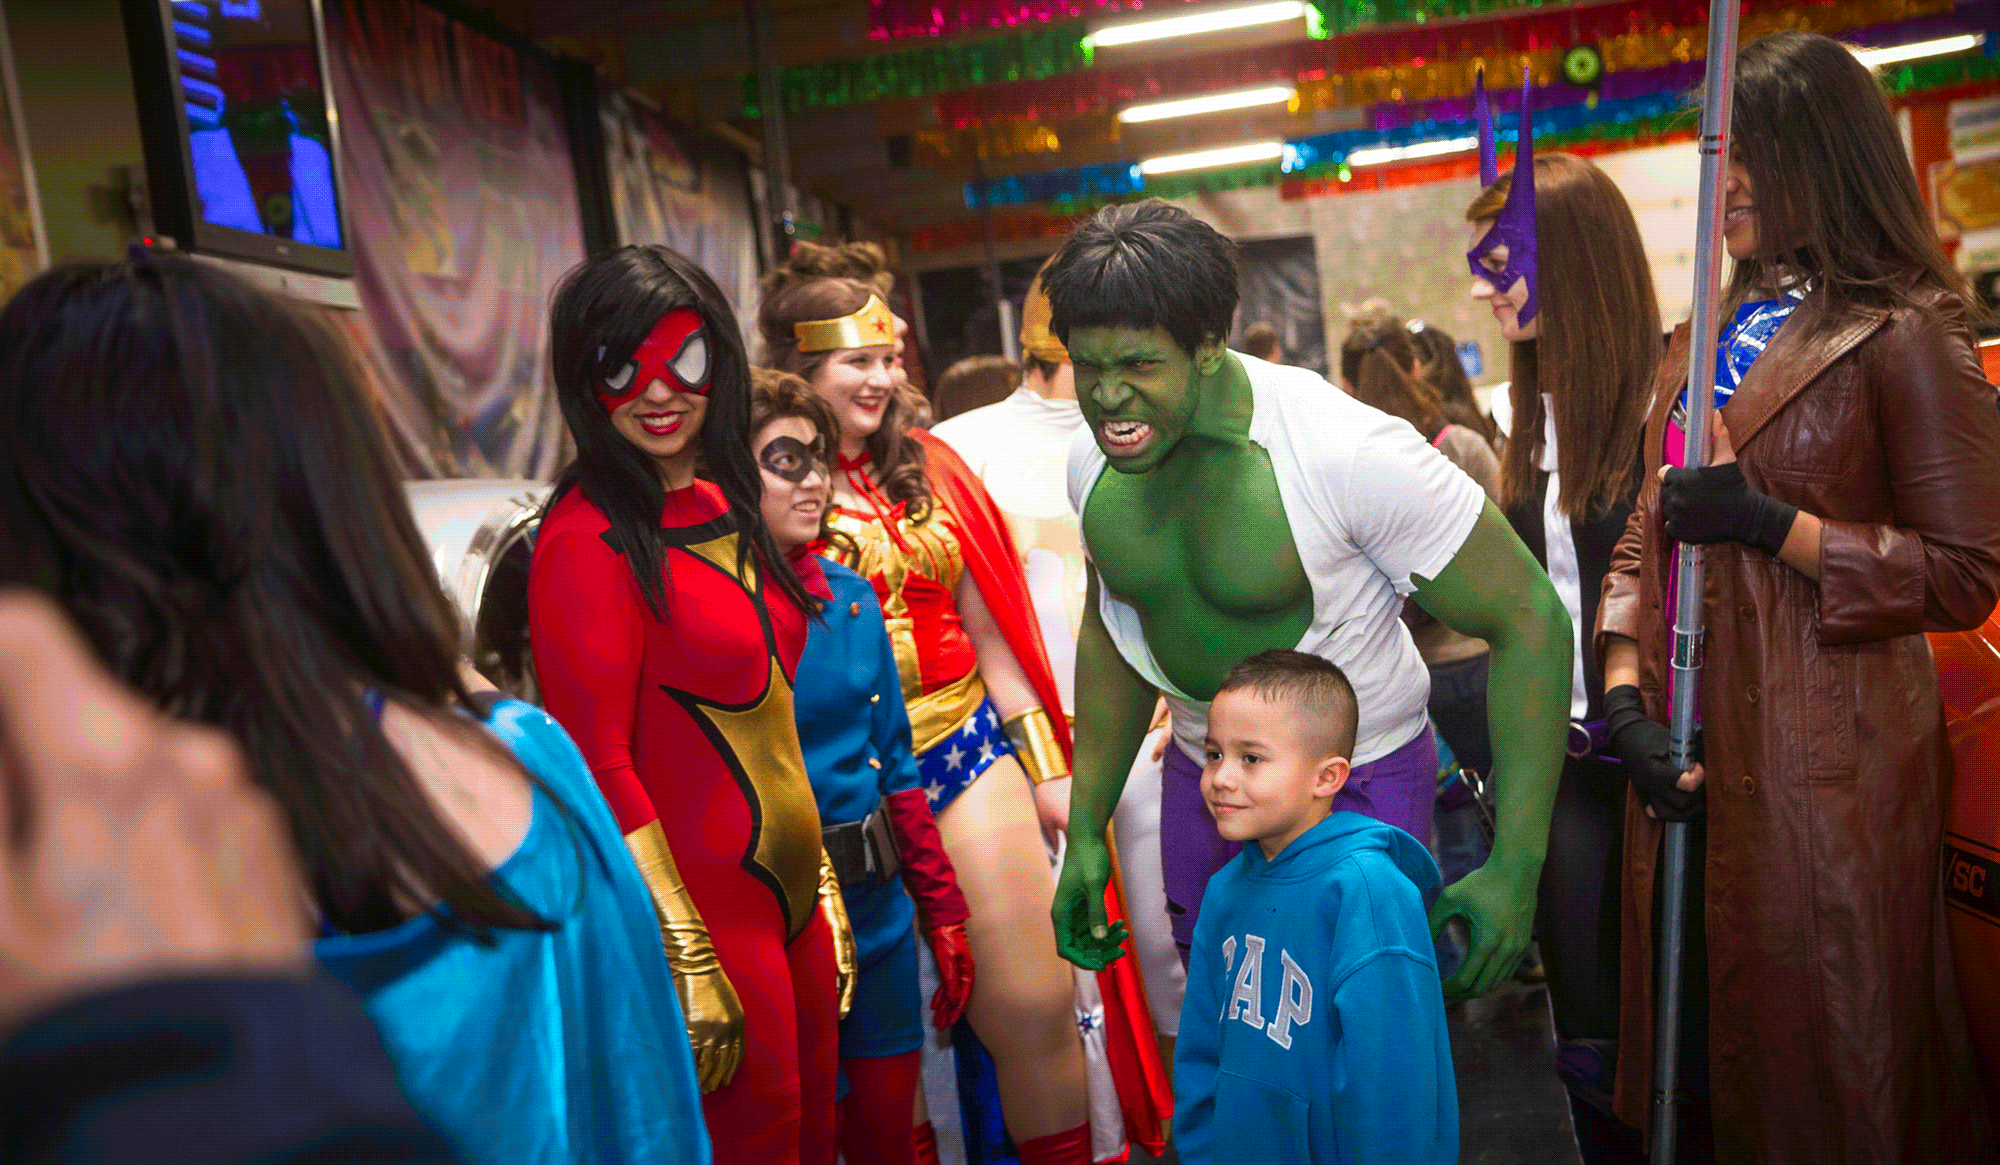 Princesses & Superheroes at Volo Auto Museum